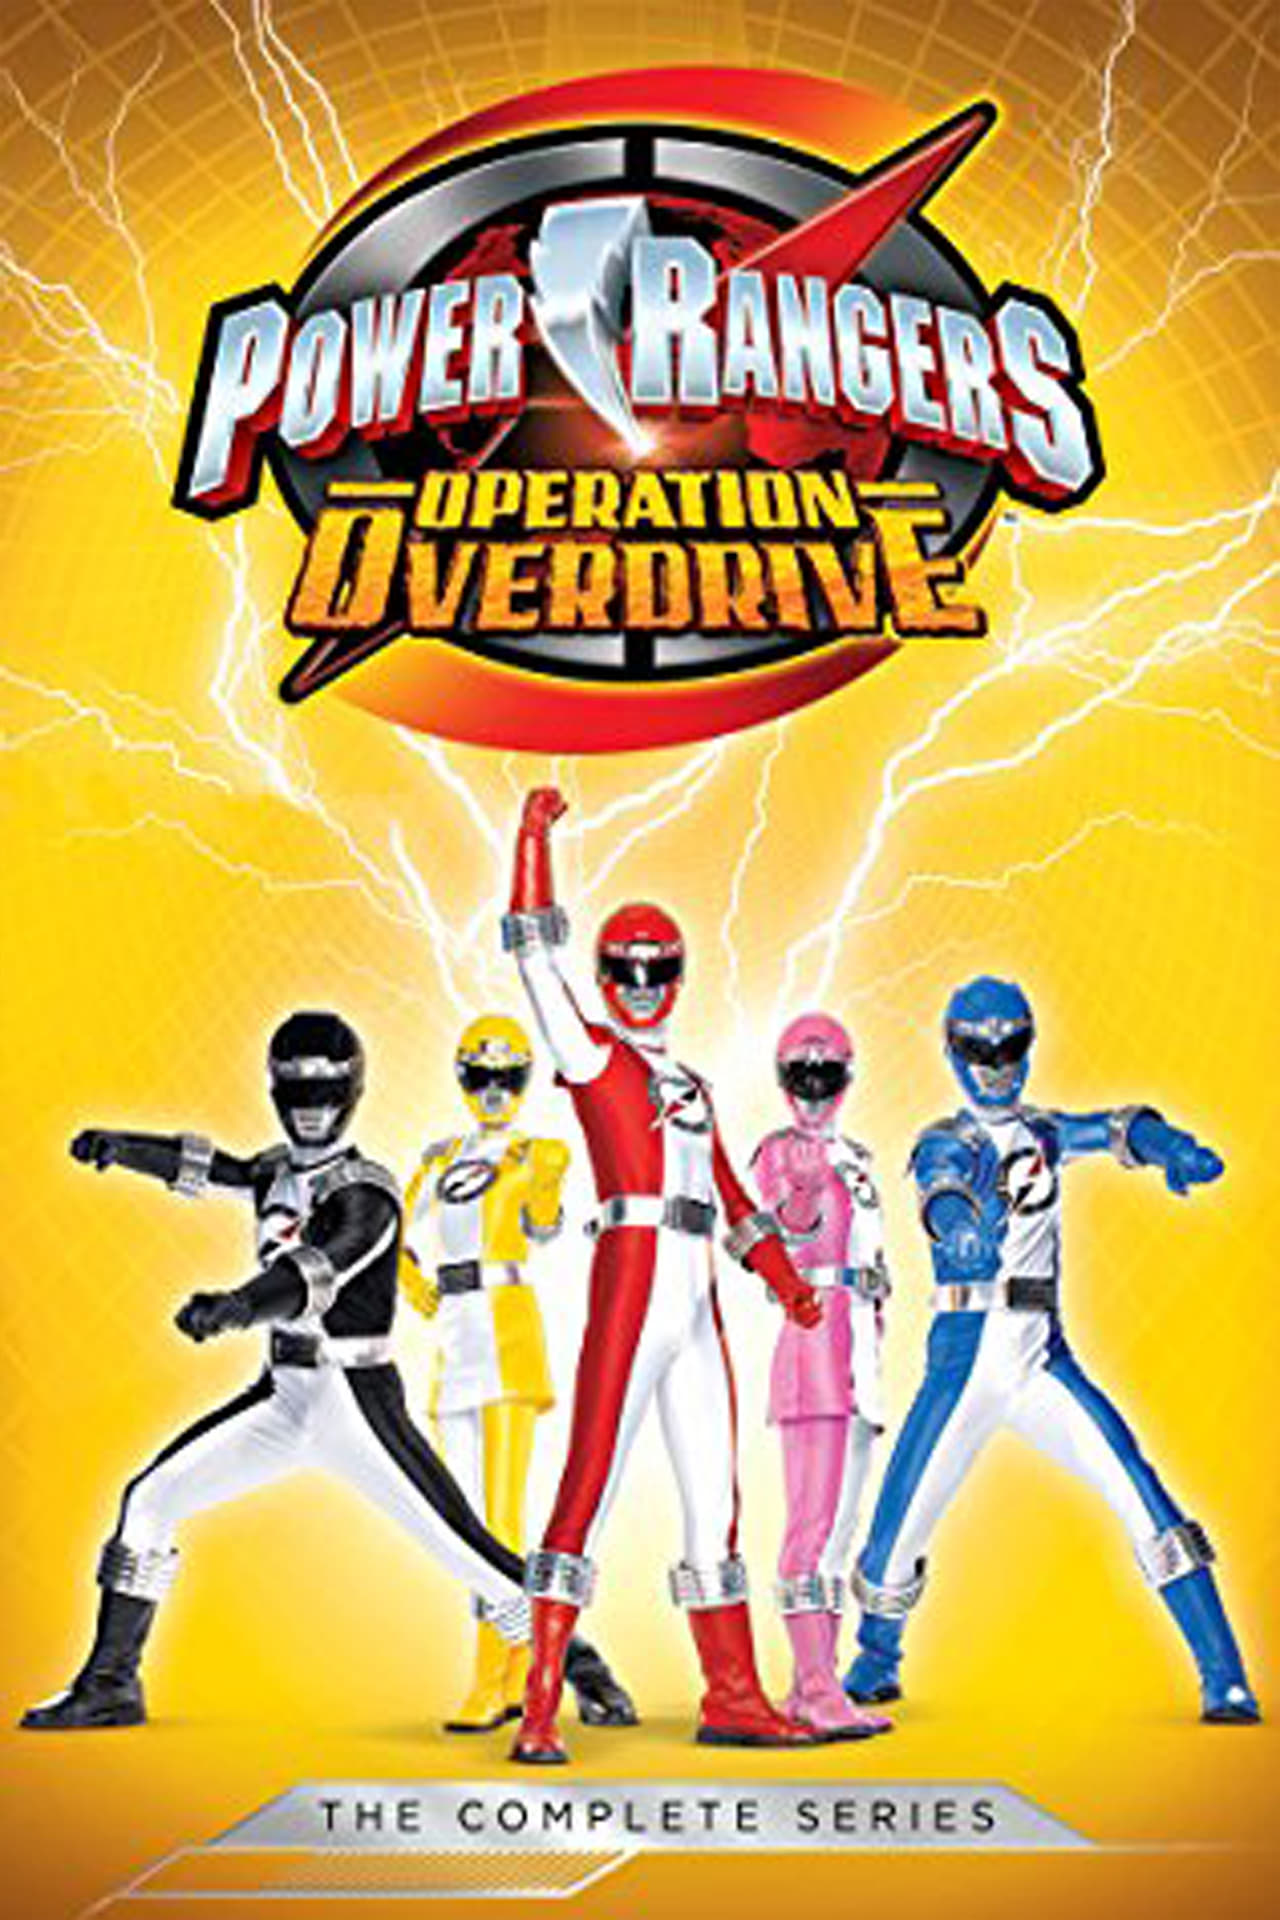 Putlocker Power Rangers Season 15 (2007)